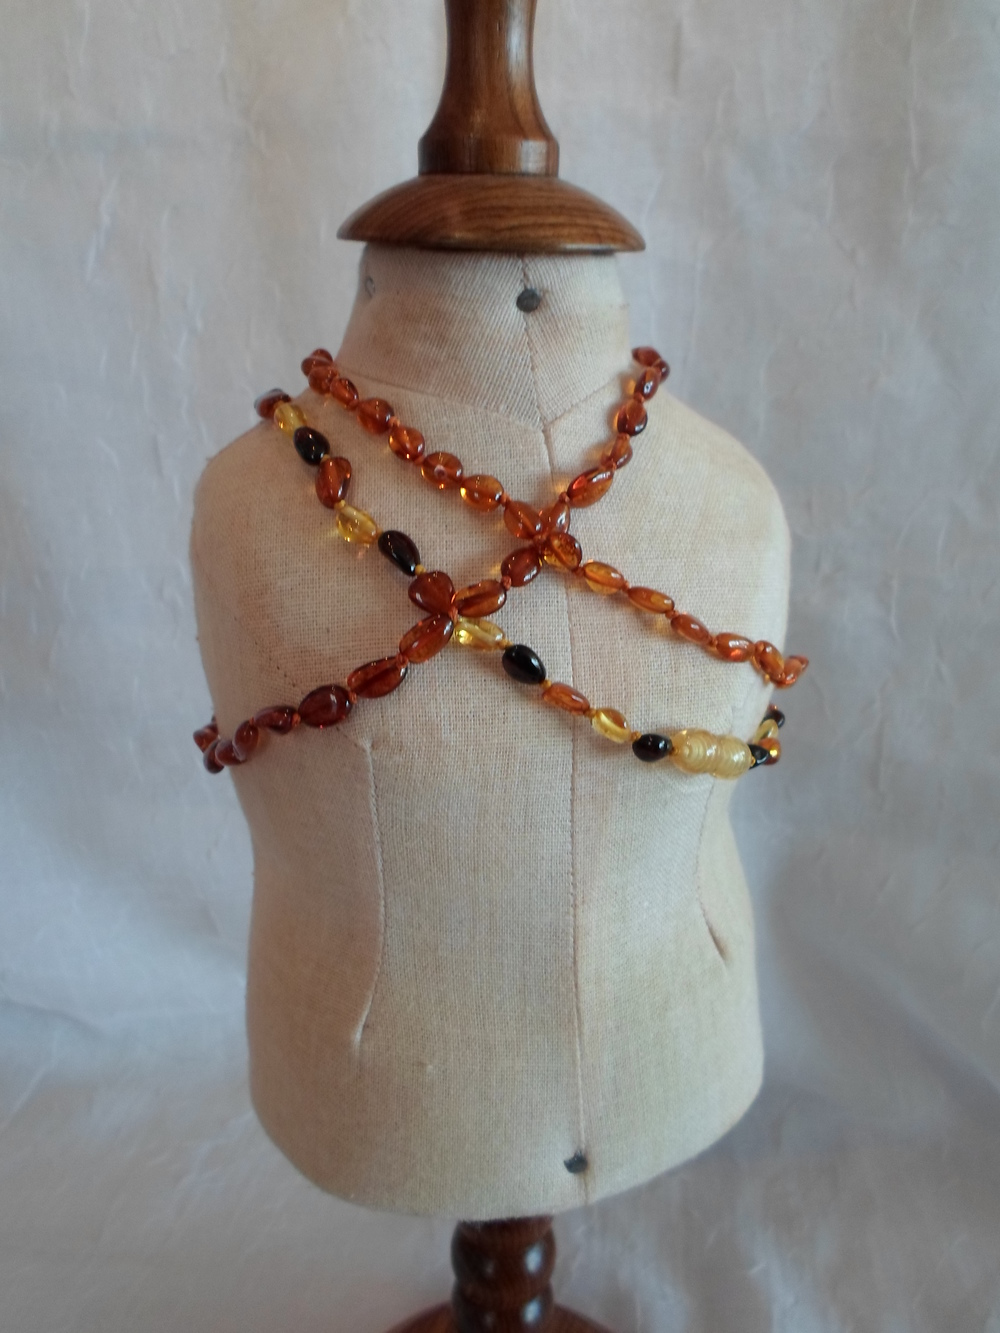 Amber Teething Necklace $21 Wants 1 - PURCHASED